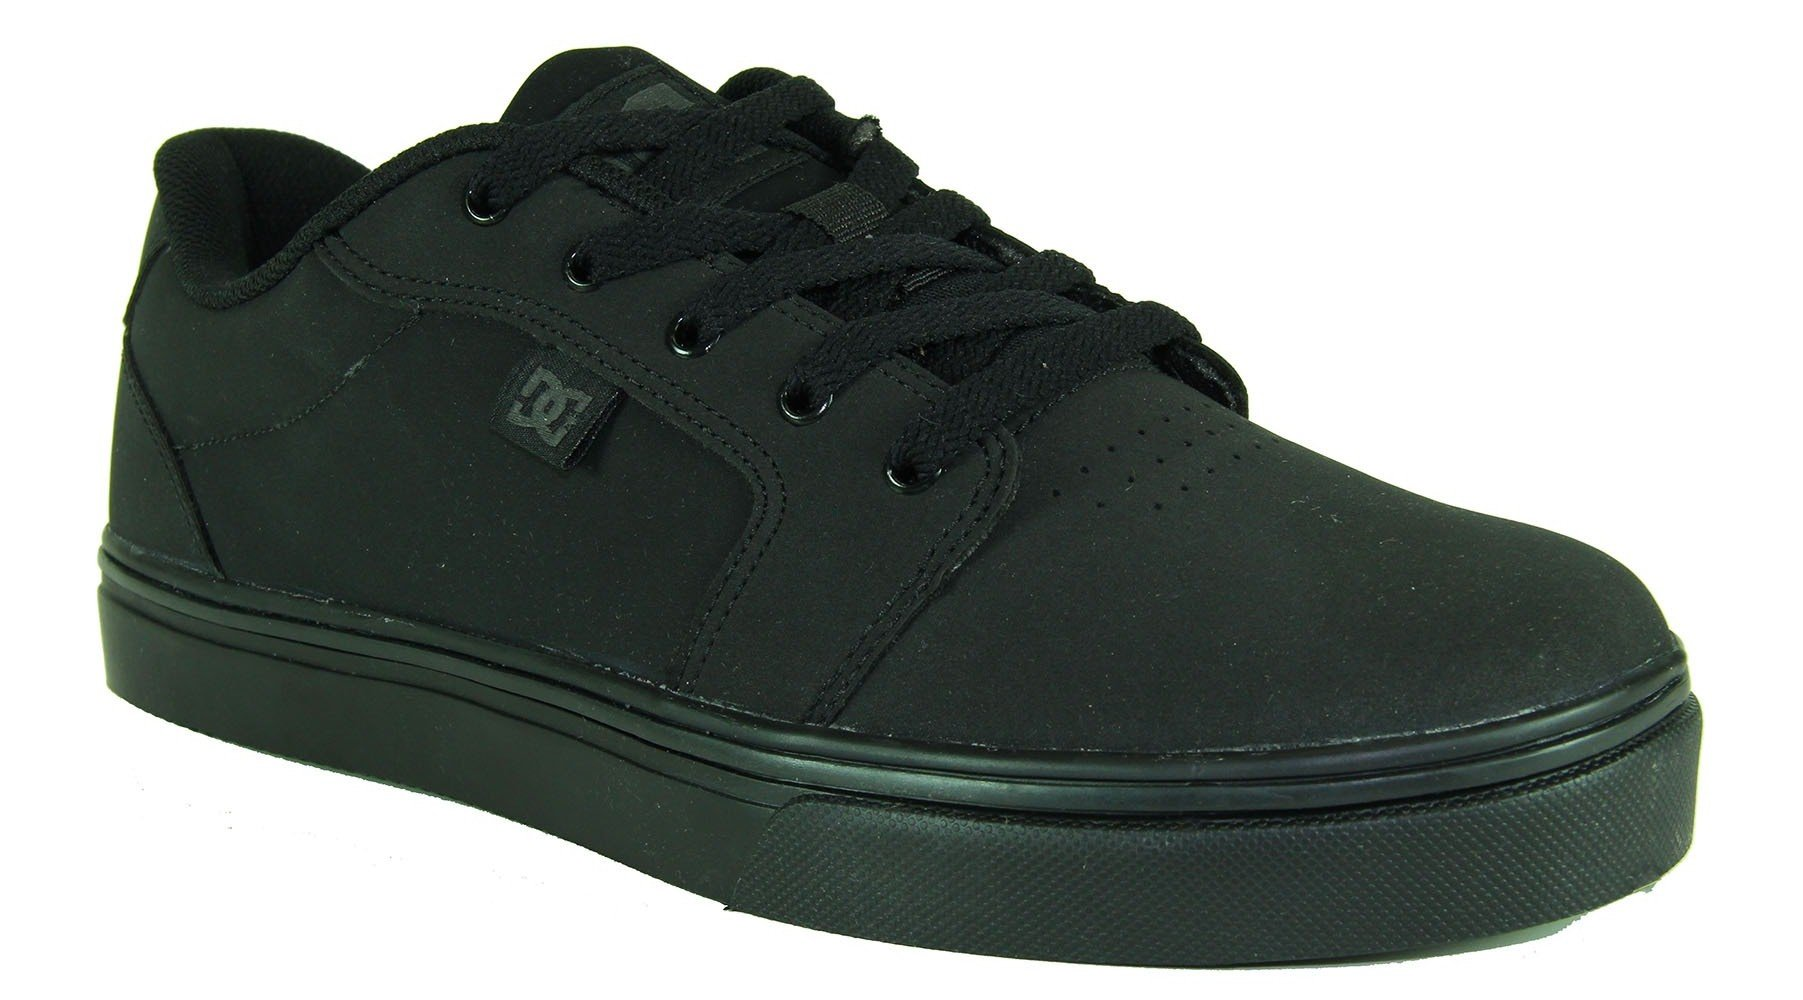 Tenis Feminino Dc Shoes Anvil II - Black Black - Session Store 67231ebb73bfd